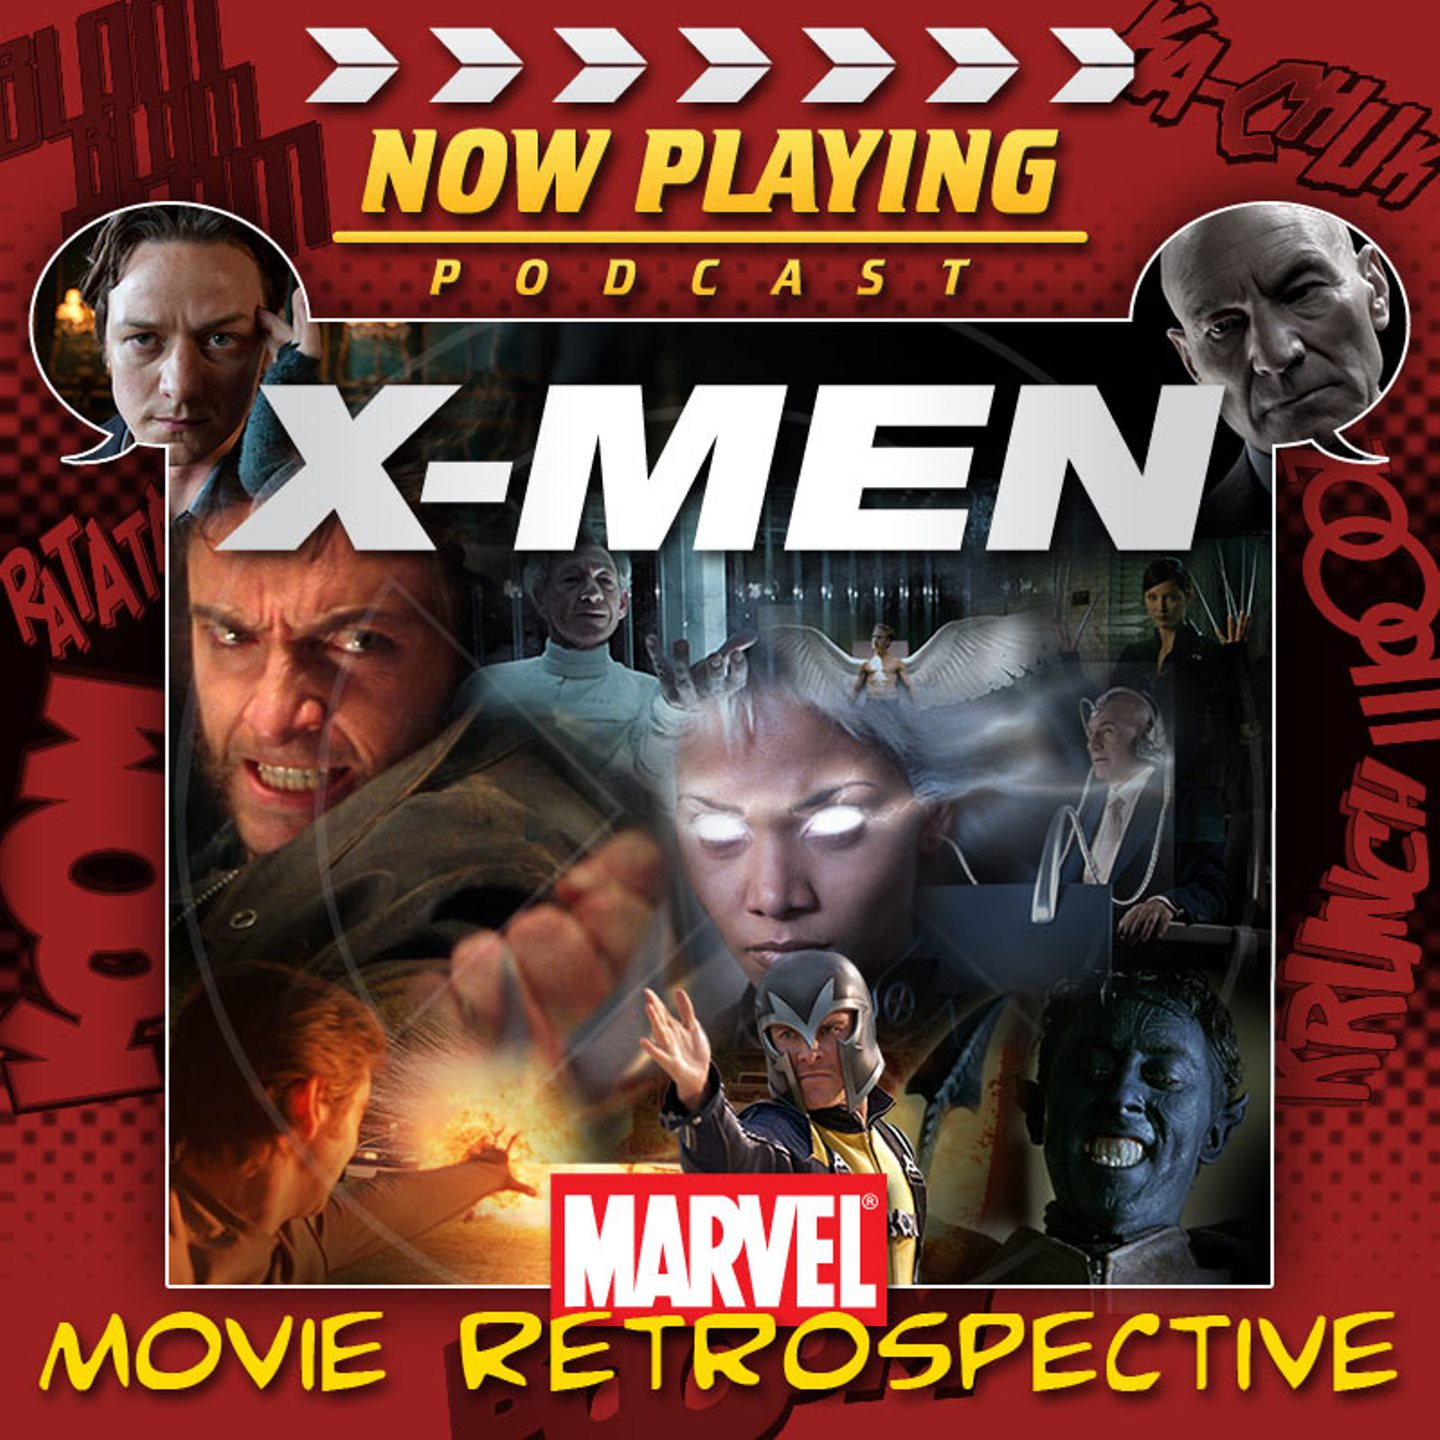 Now Playing - The Movie Review Podcast | Podbay